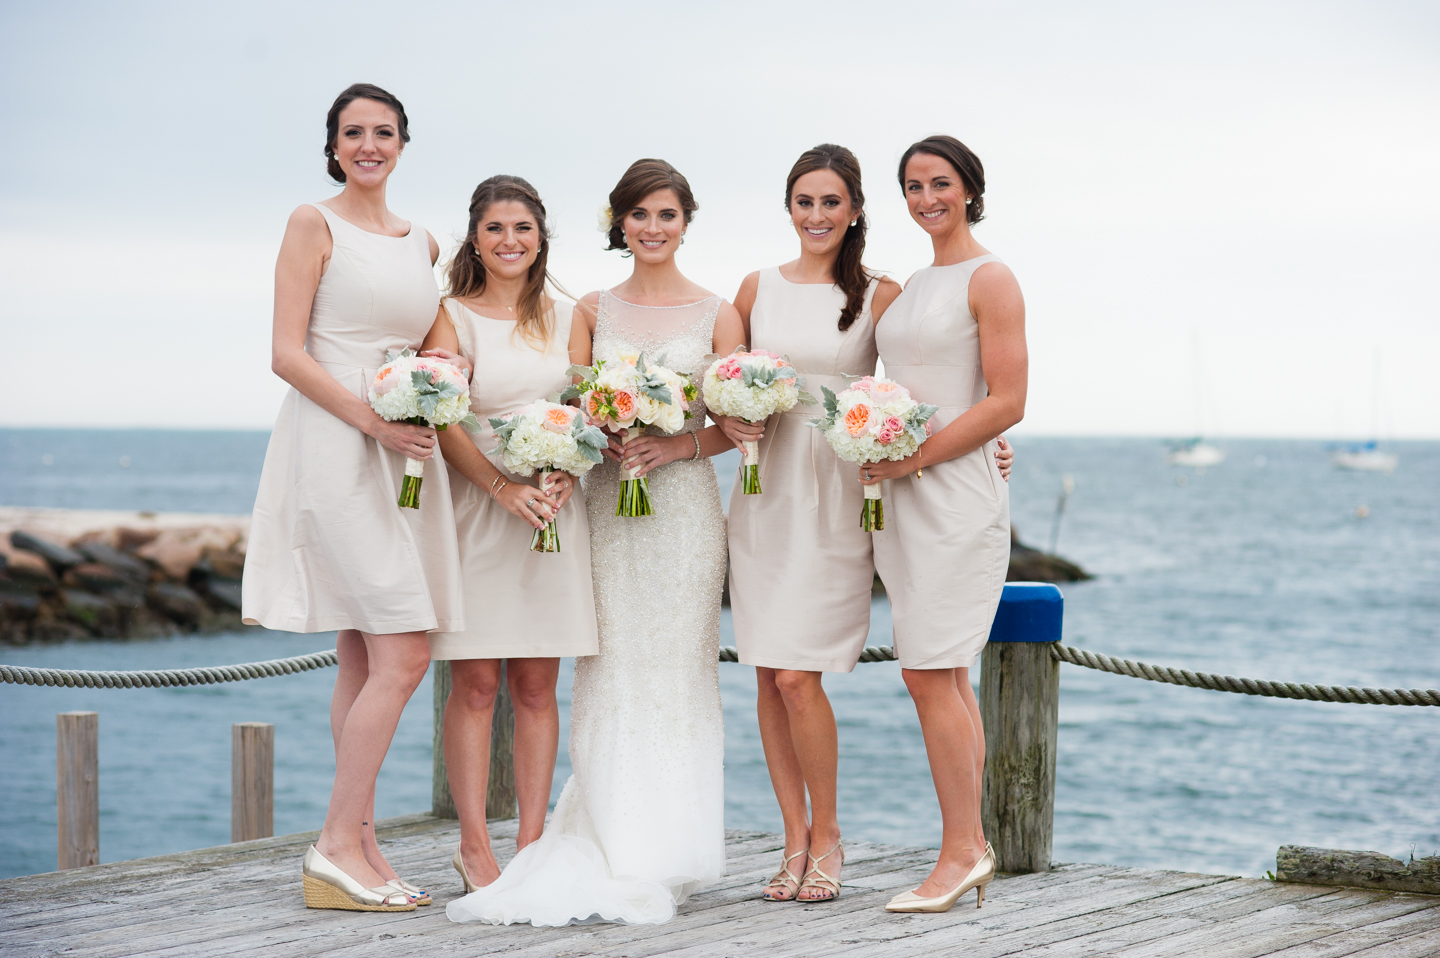 beautiful bridesmaids in classic cream dresses stand by the ocean